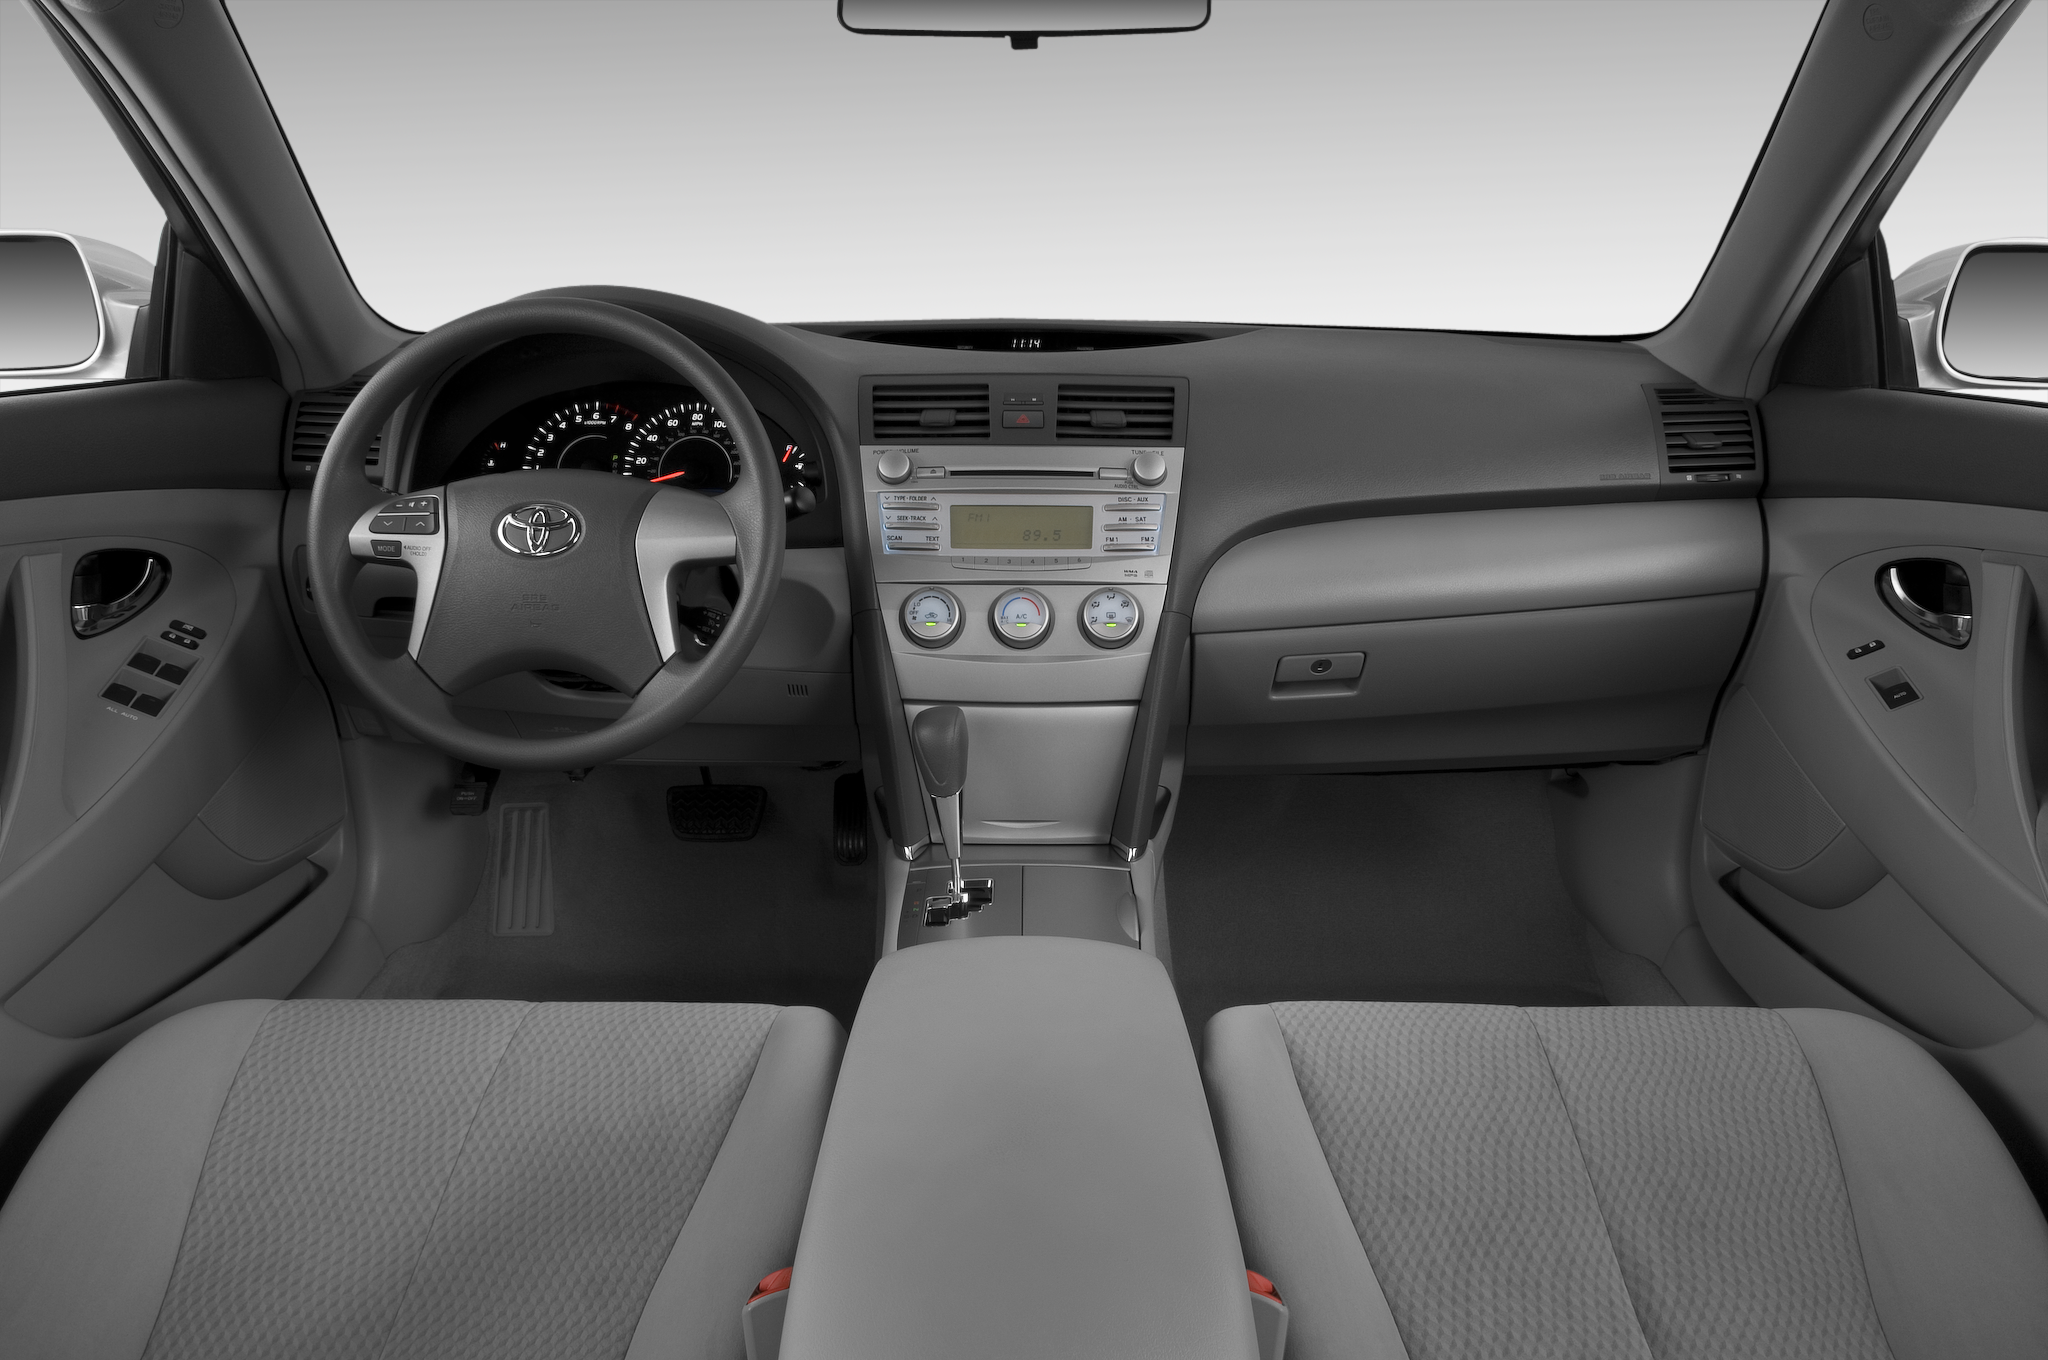 2015 toyota camry v6 0 to 60 times autos post. Black Bedroom Furniture Sets. Home Design Ideas